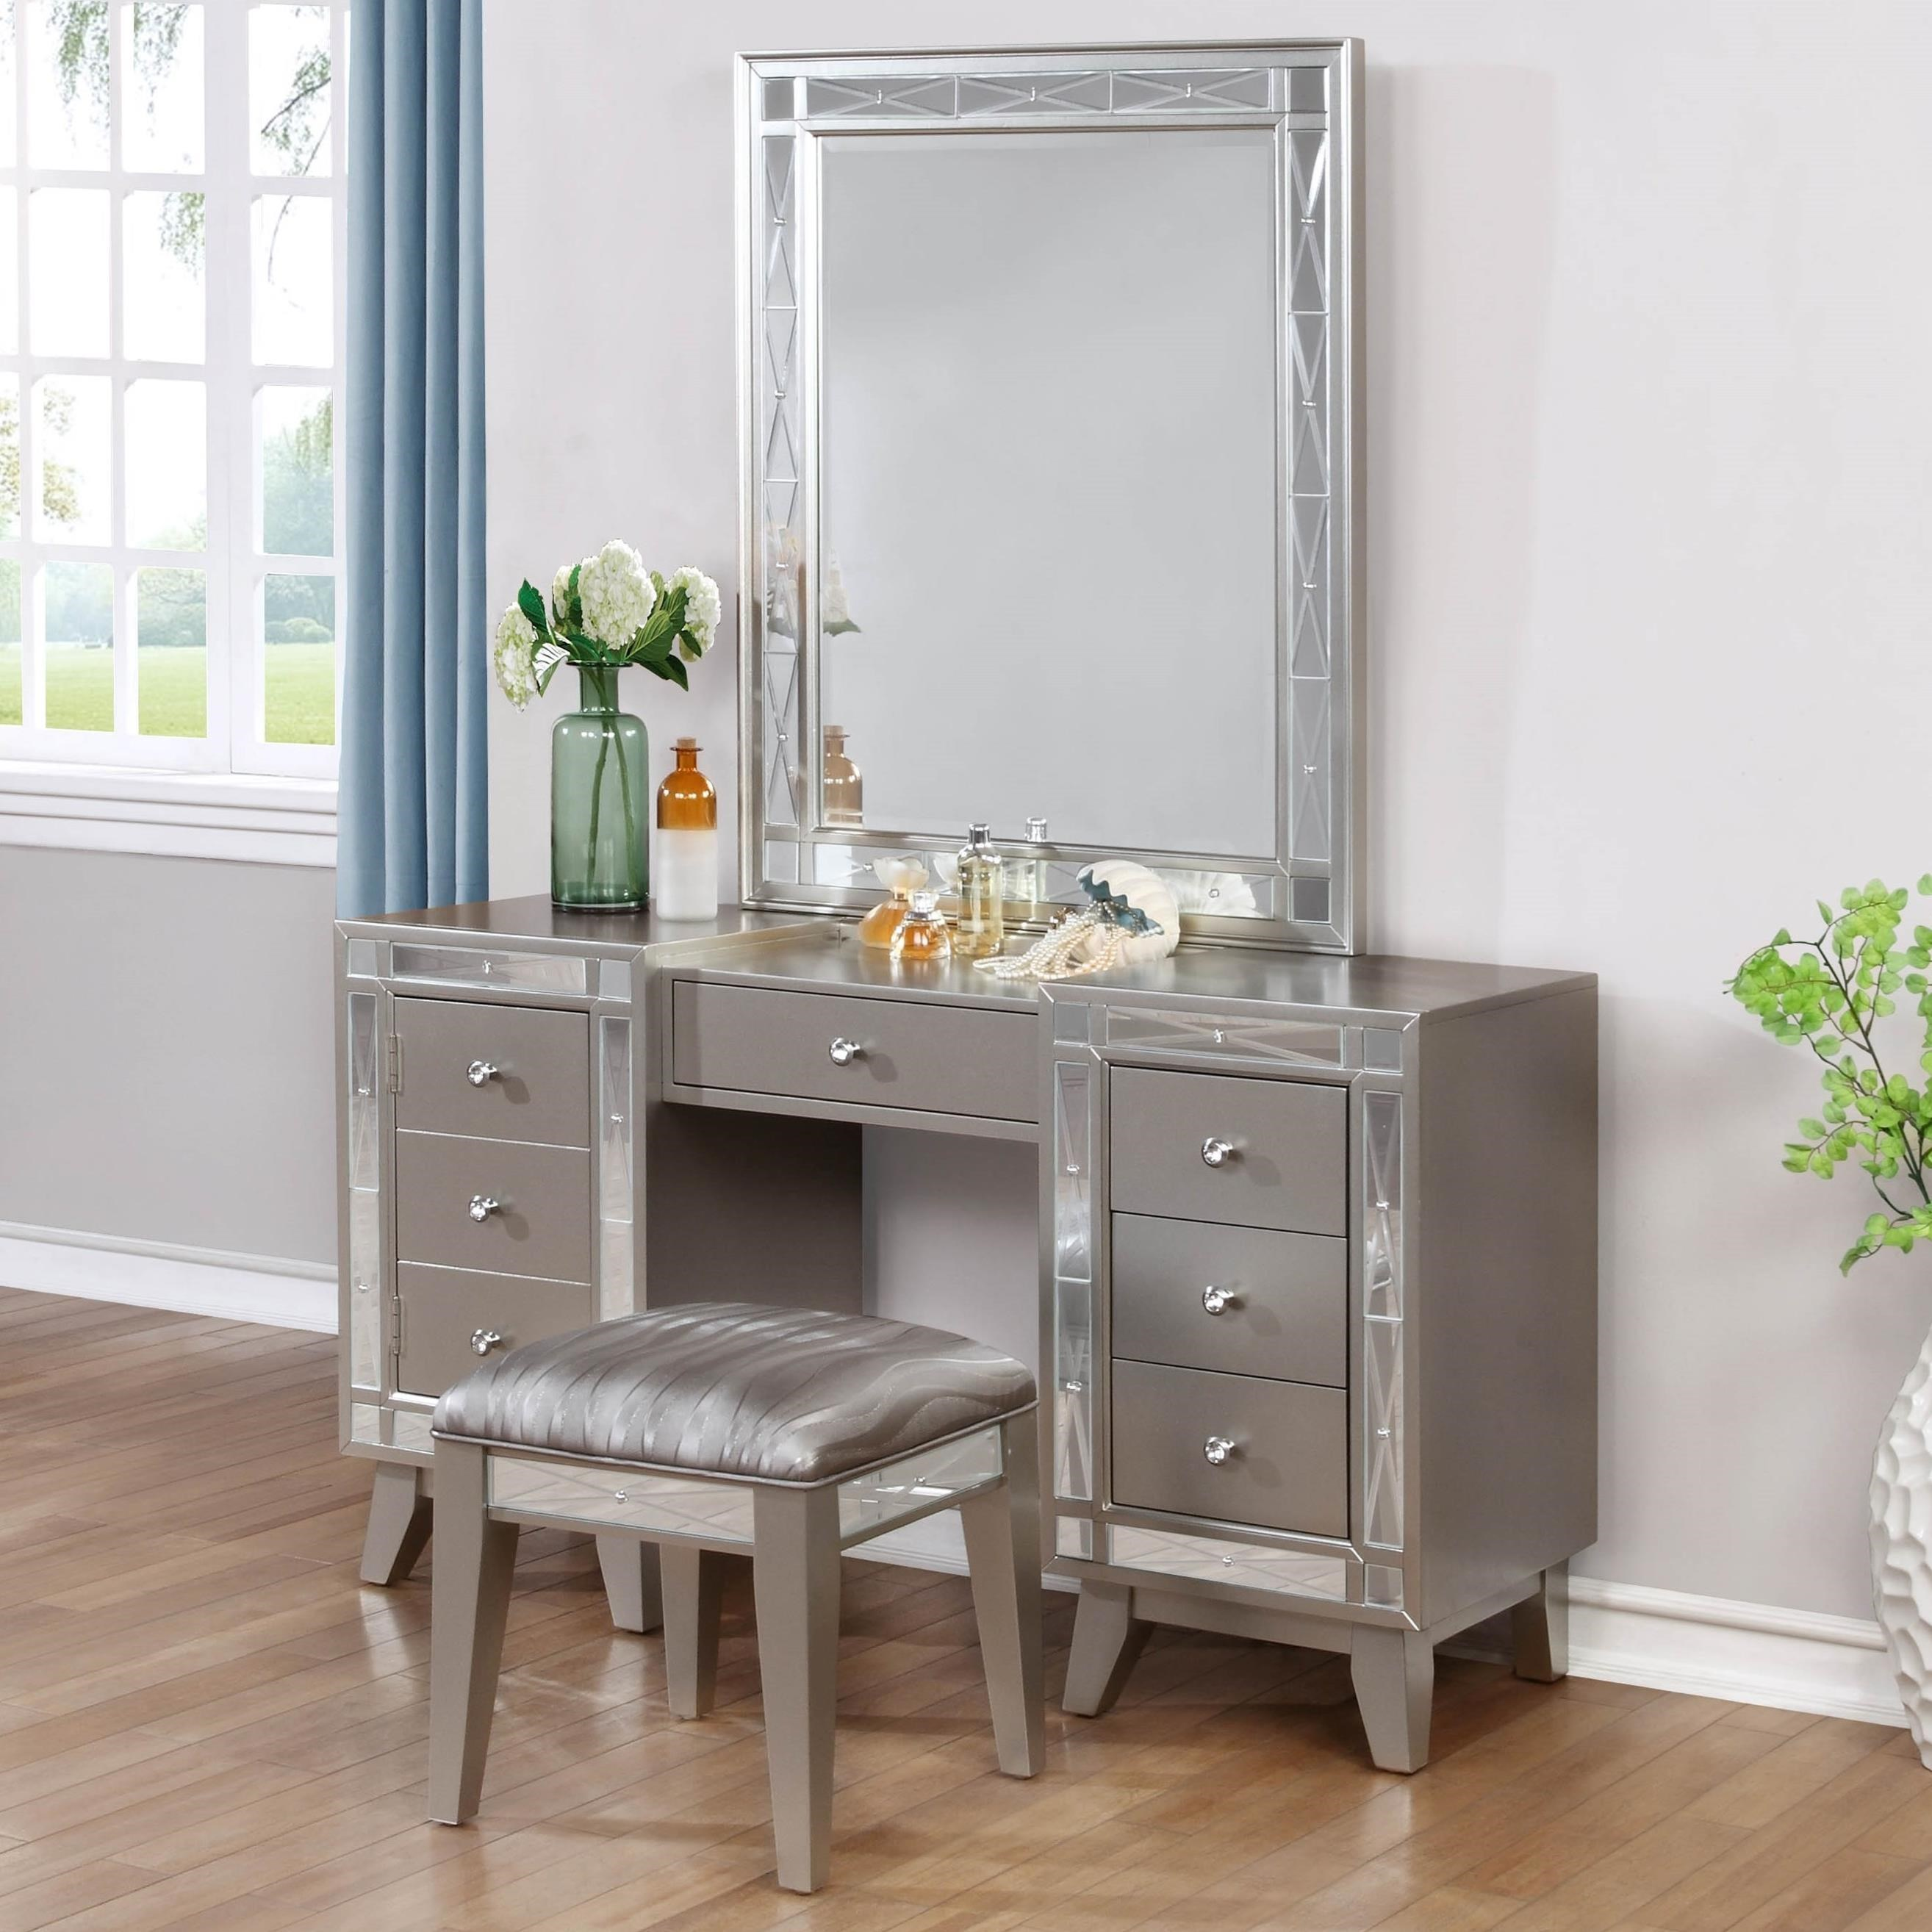 Leighton Glam Vanity Desk, Stool And Mirror Combo By Coaster